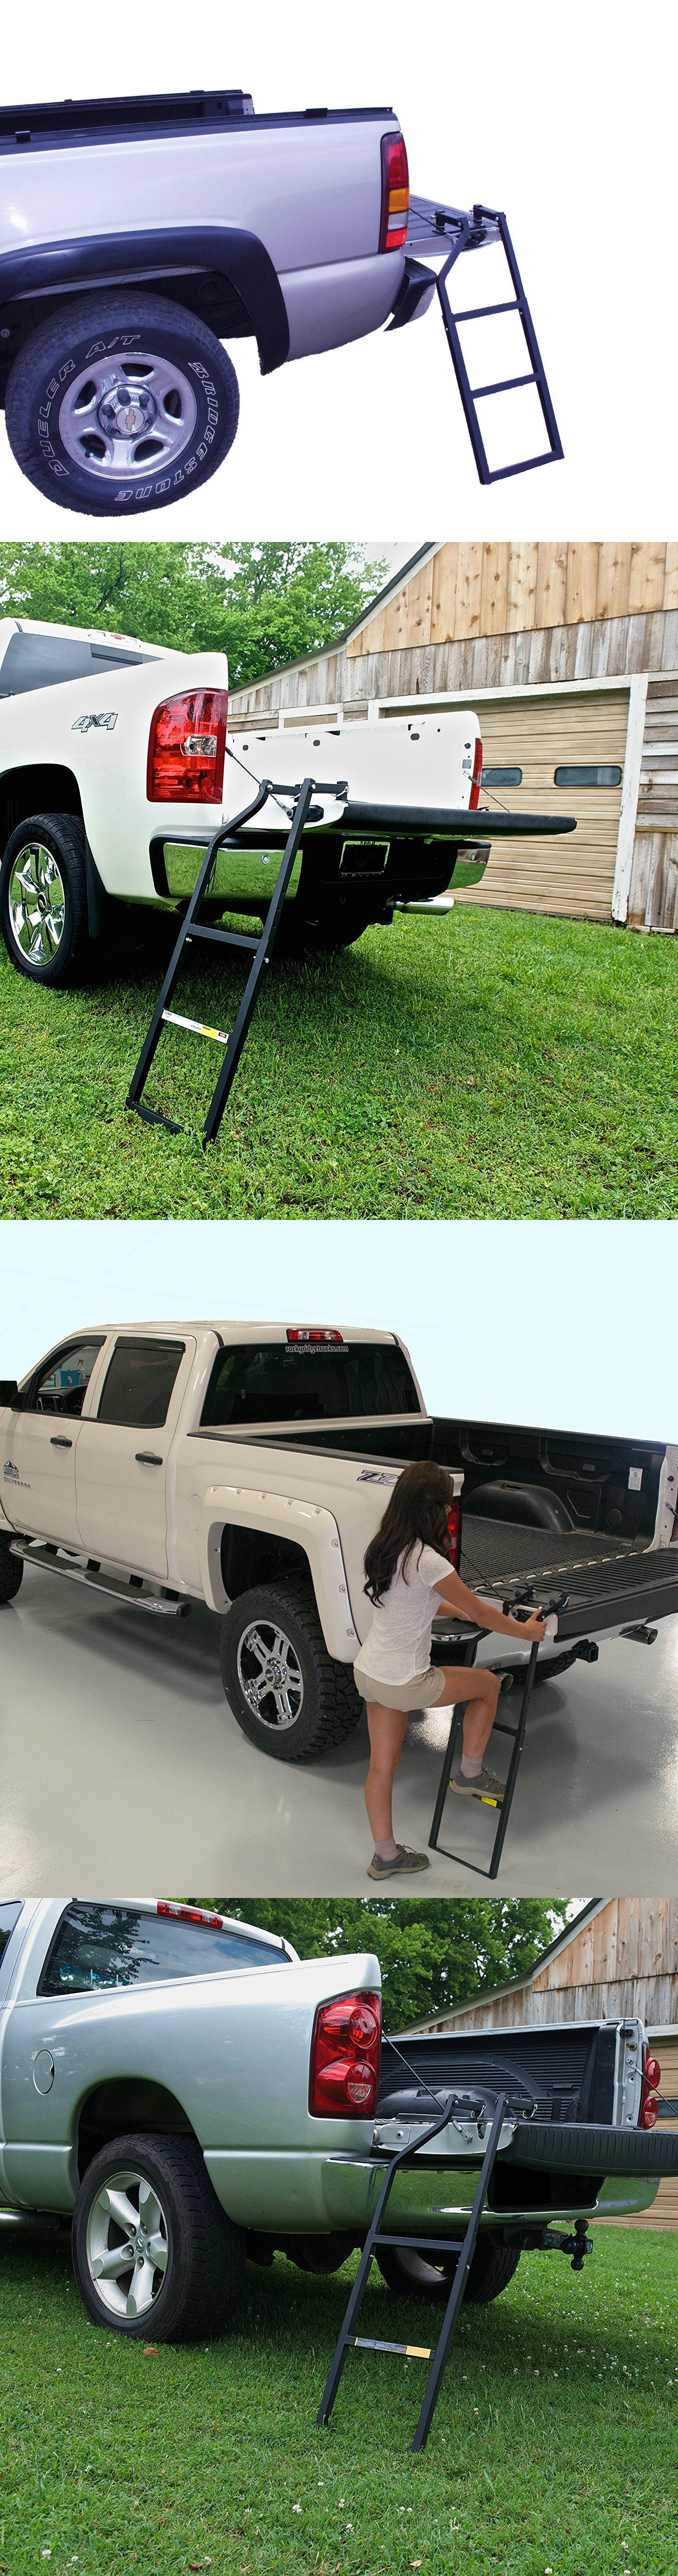 other backyard games 159081 traxion traxion 5 100 tailgate ladder